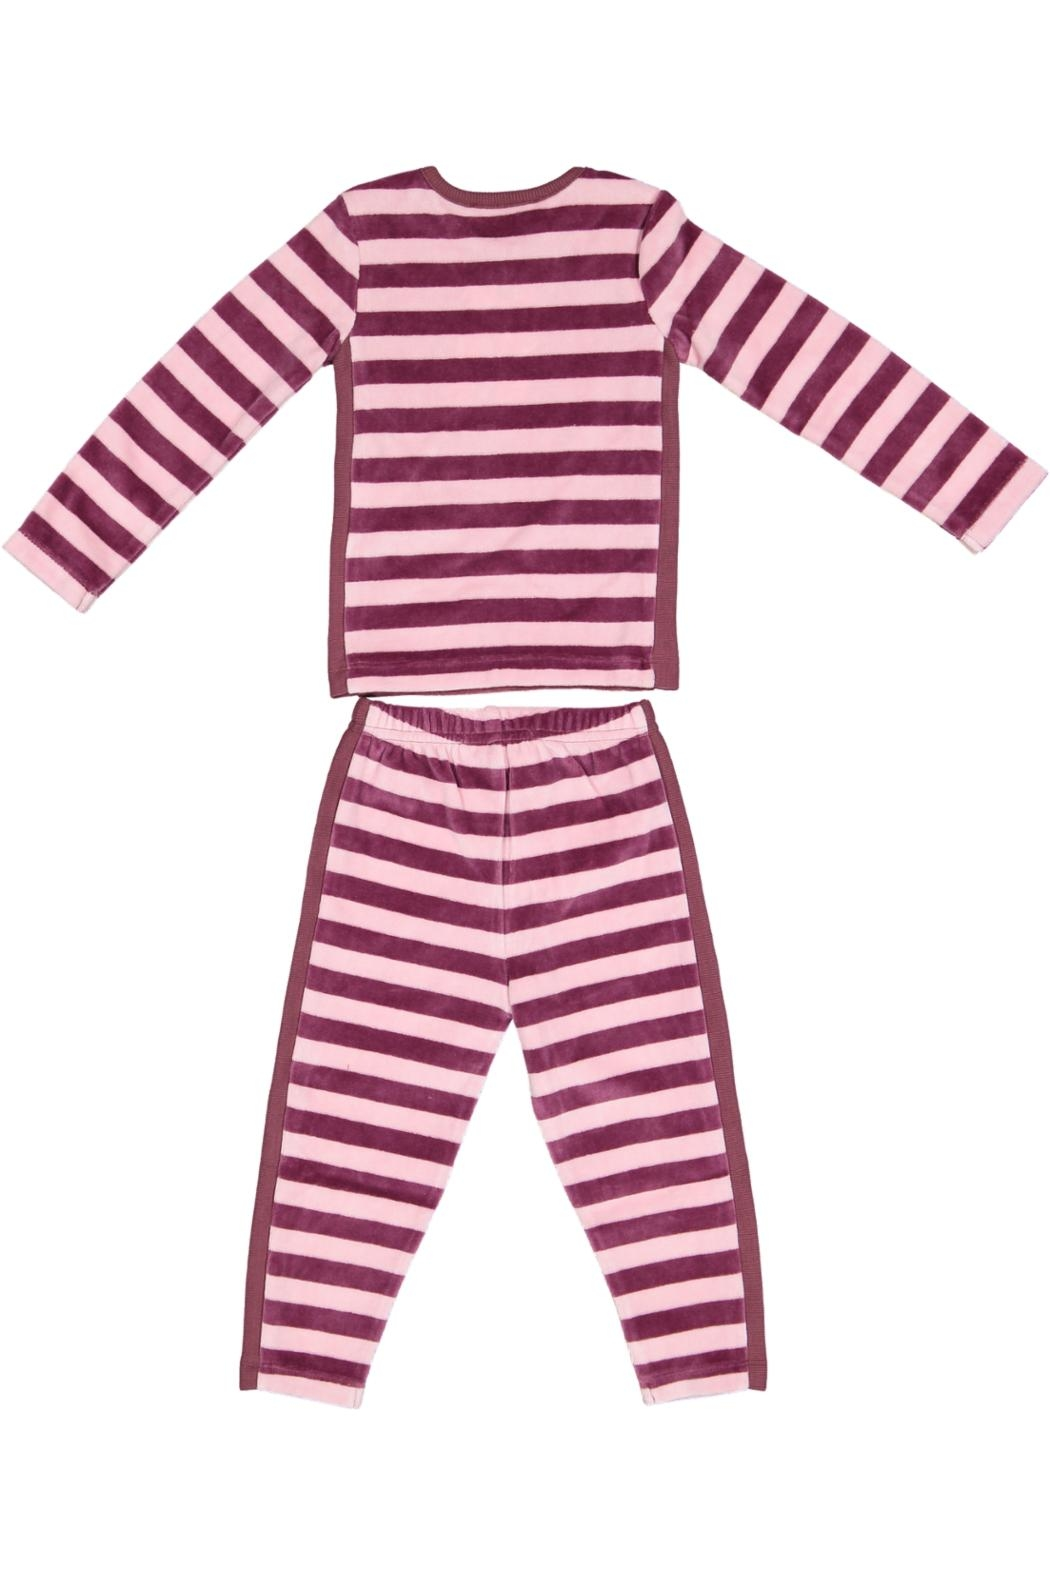 Pounds and Ounces Plum/pink Striped Pyjama - Front Full Image